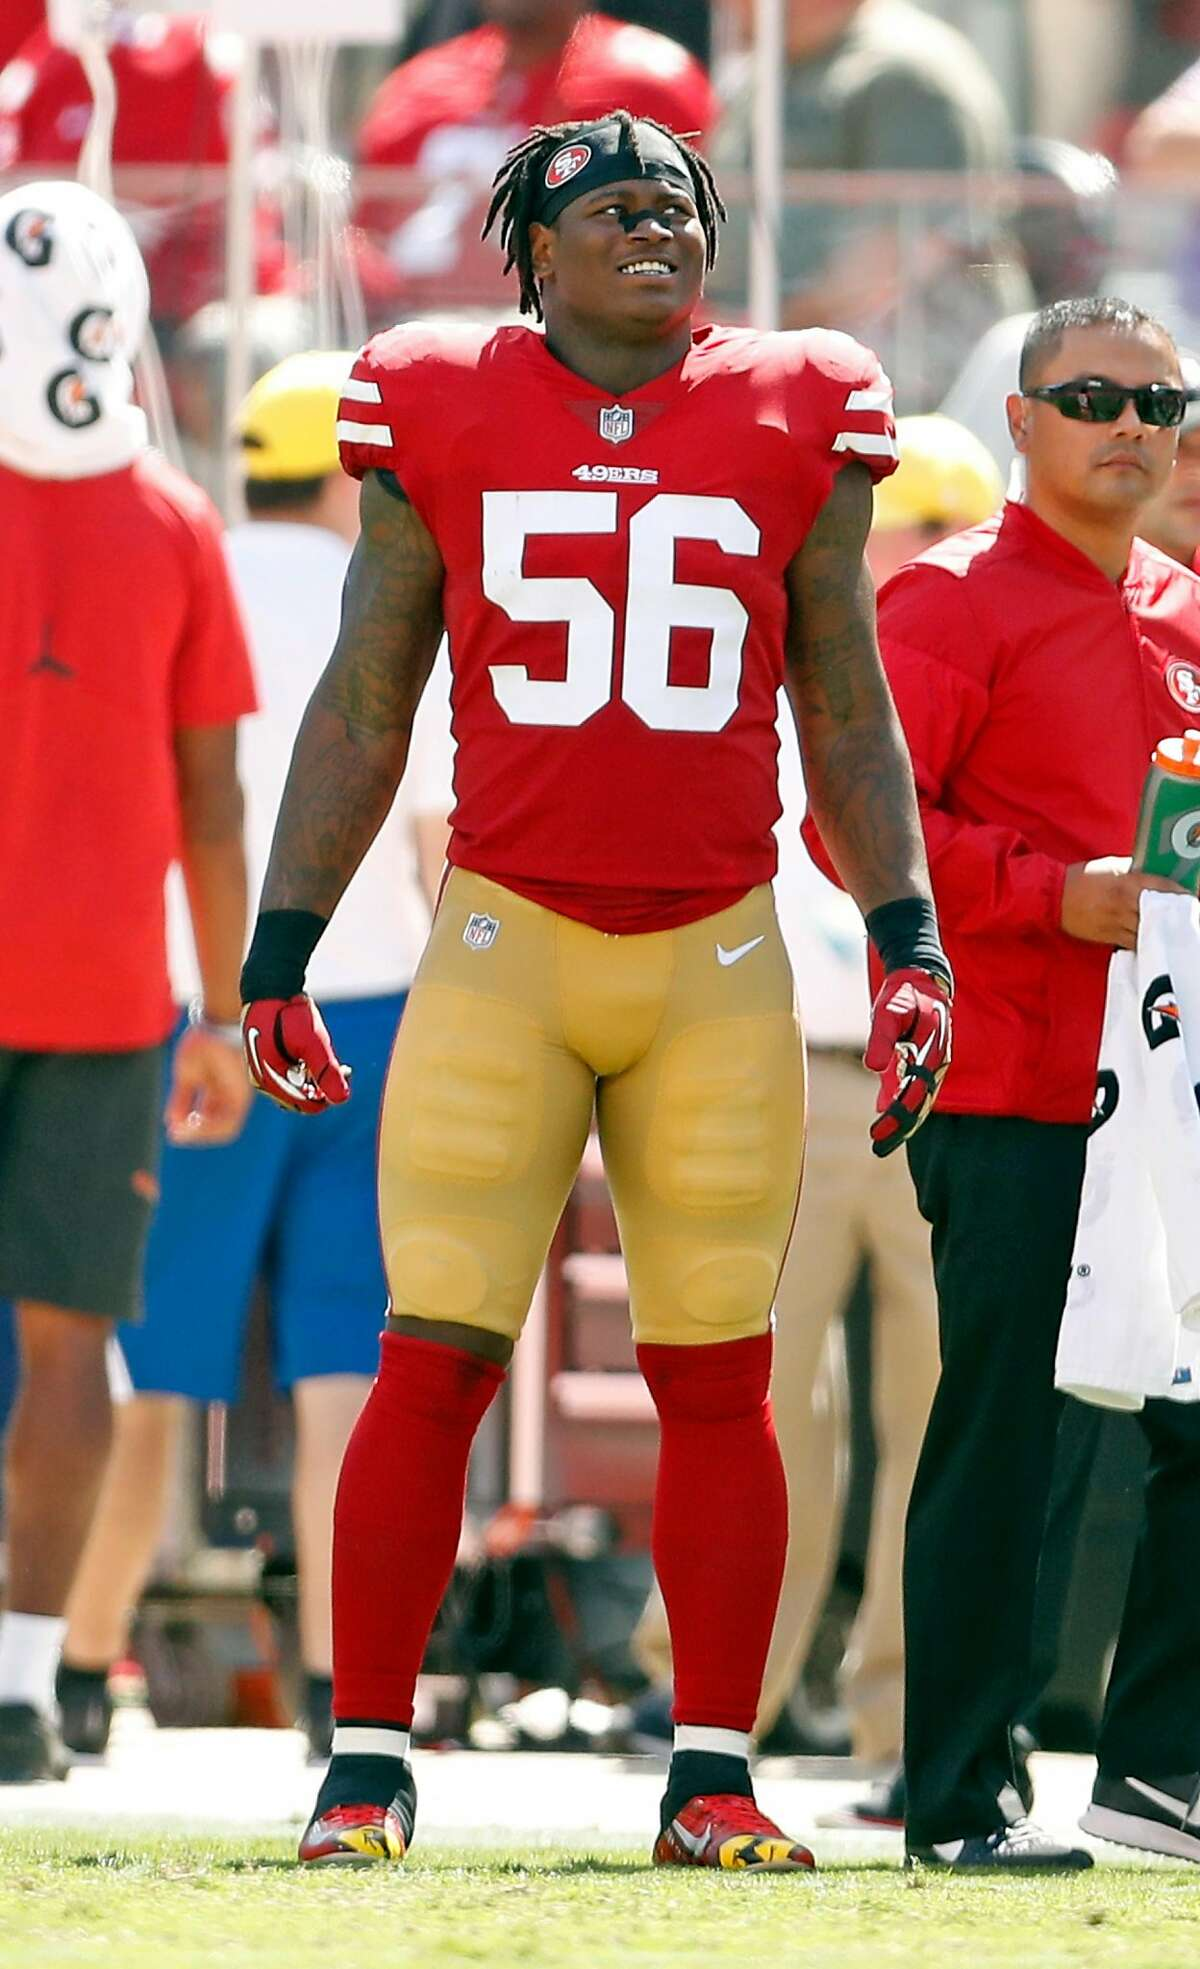 San Francisco 49ers' Reuben Foster watches the action in 3rd quarter of 23-3 loss to Carolina Panthers during NFL game at Levi's Stadium in Santa Clara, Calif., on Sunday, September 10, 2017.